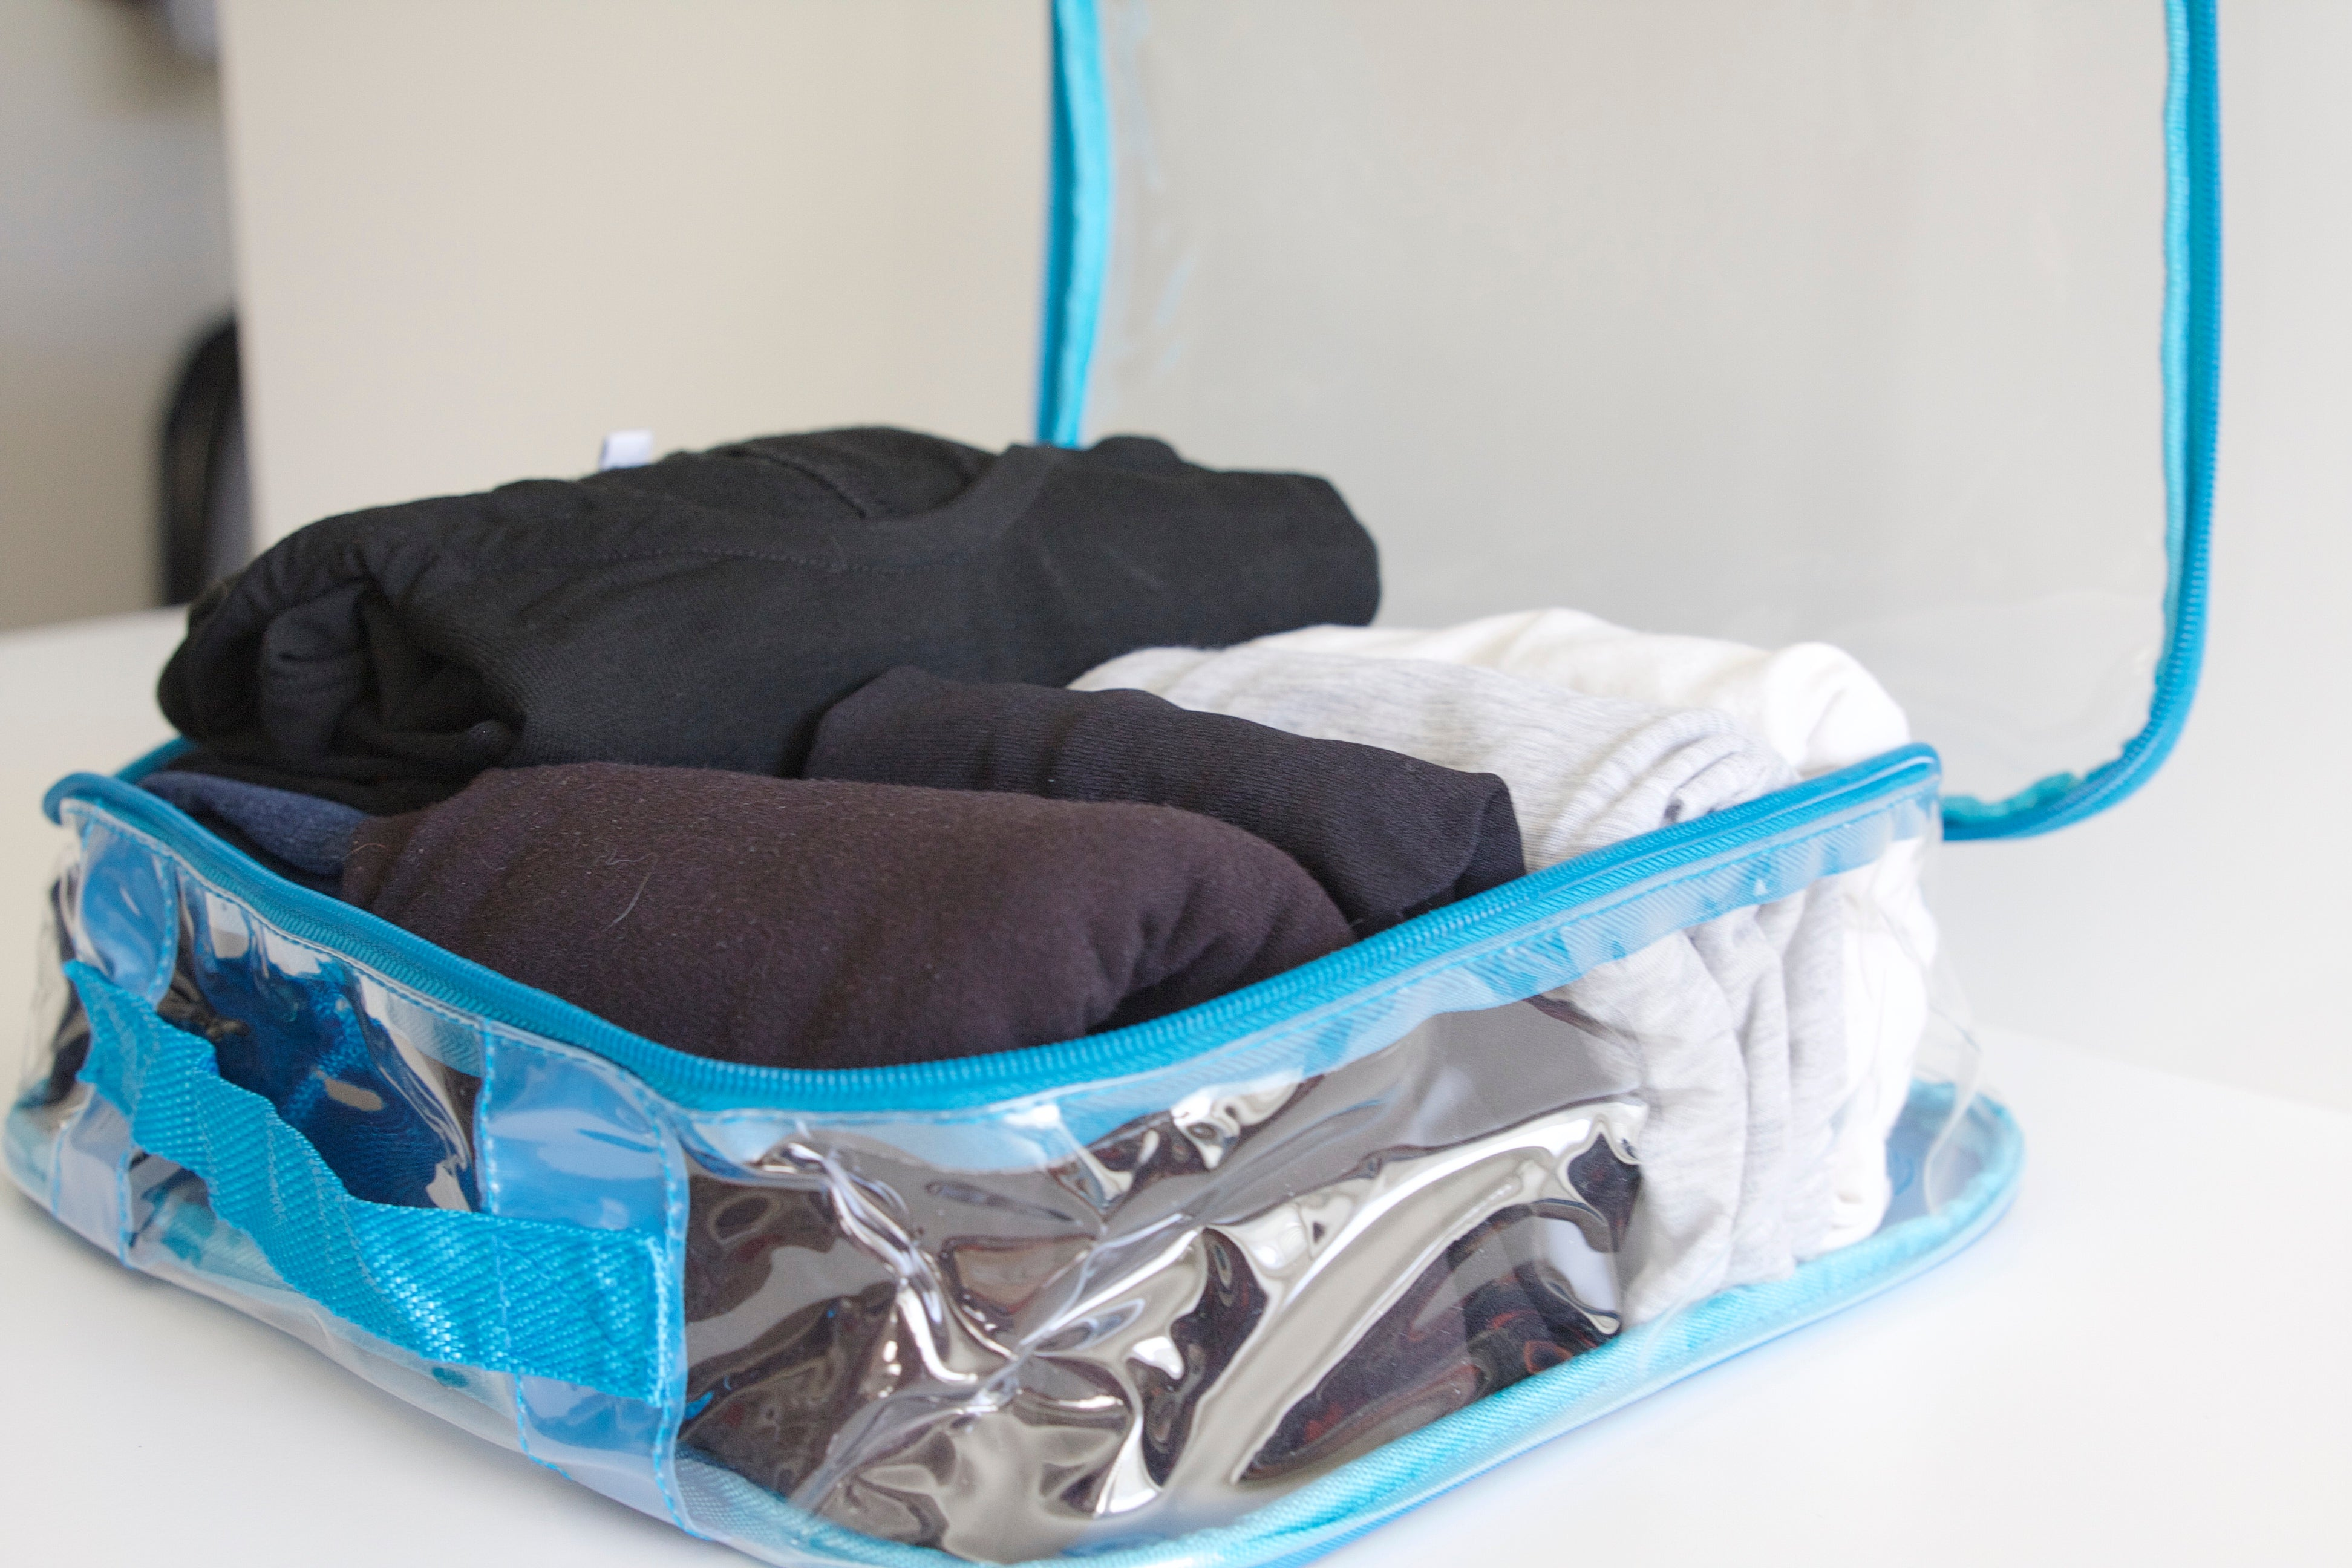 Folded clothes in a clear cube